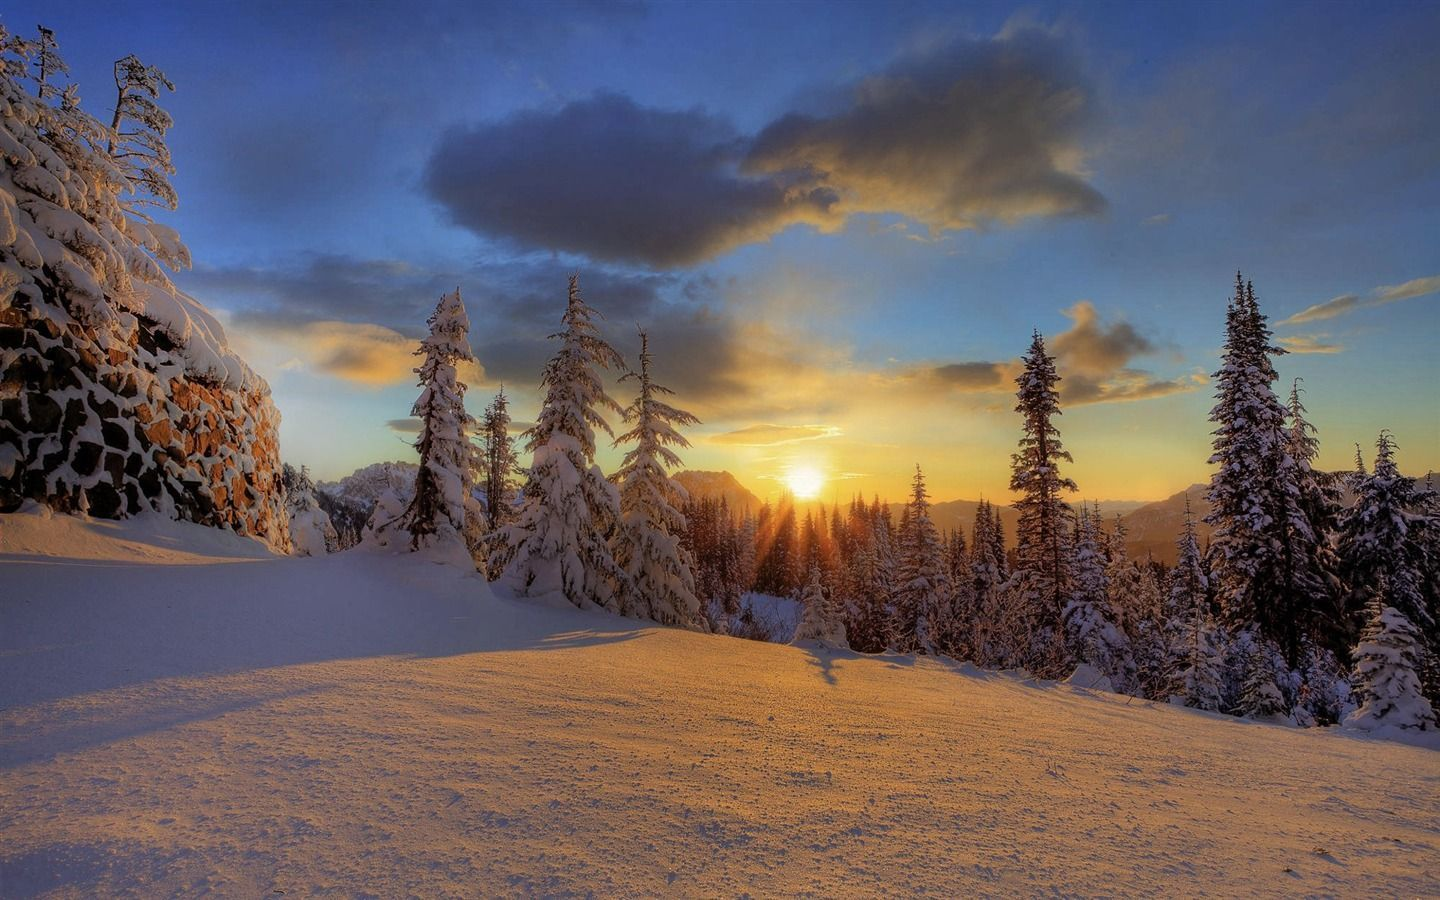 Winter screensavers wallpaper free download by berwyn ingree for Sfondi desktop inverno montagna